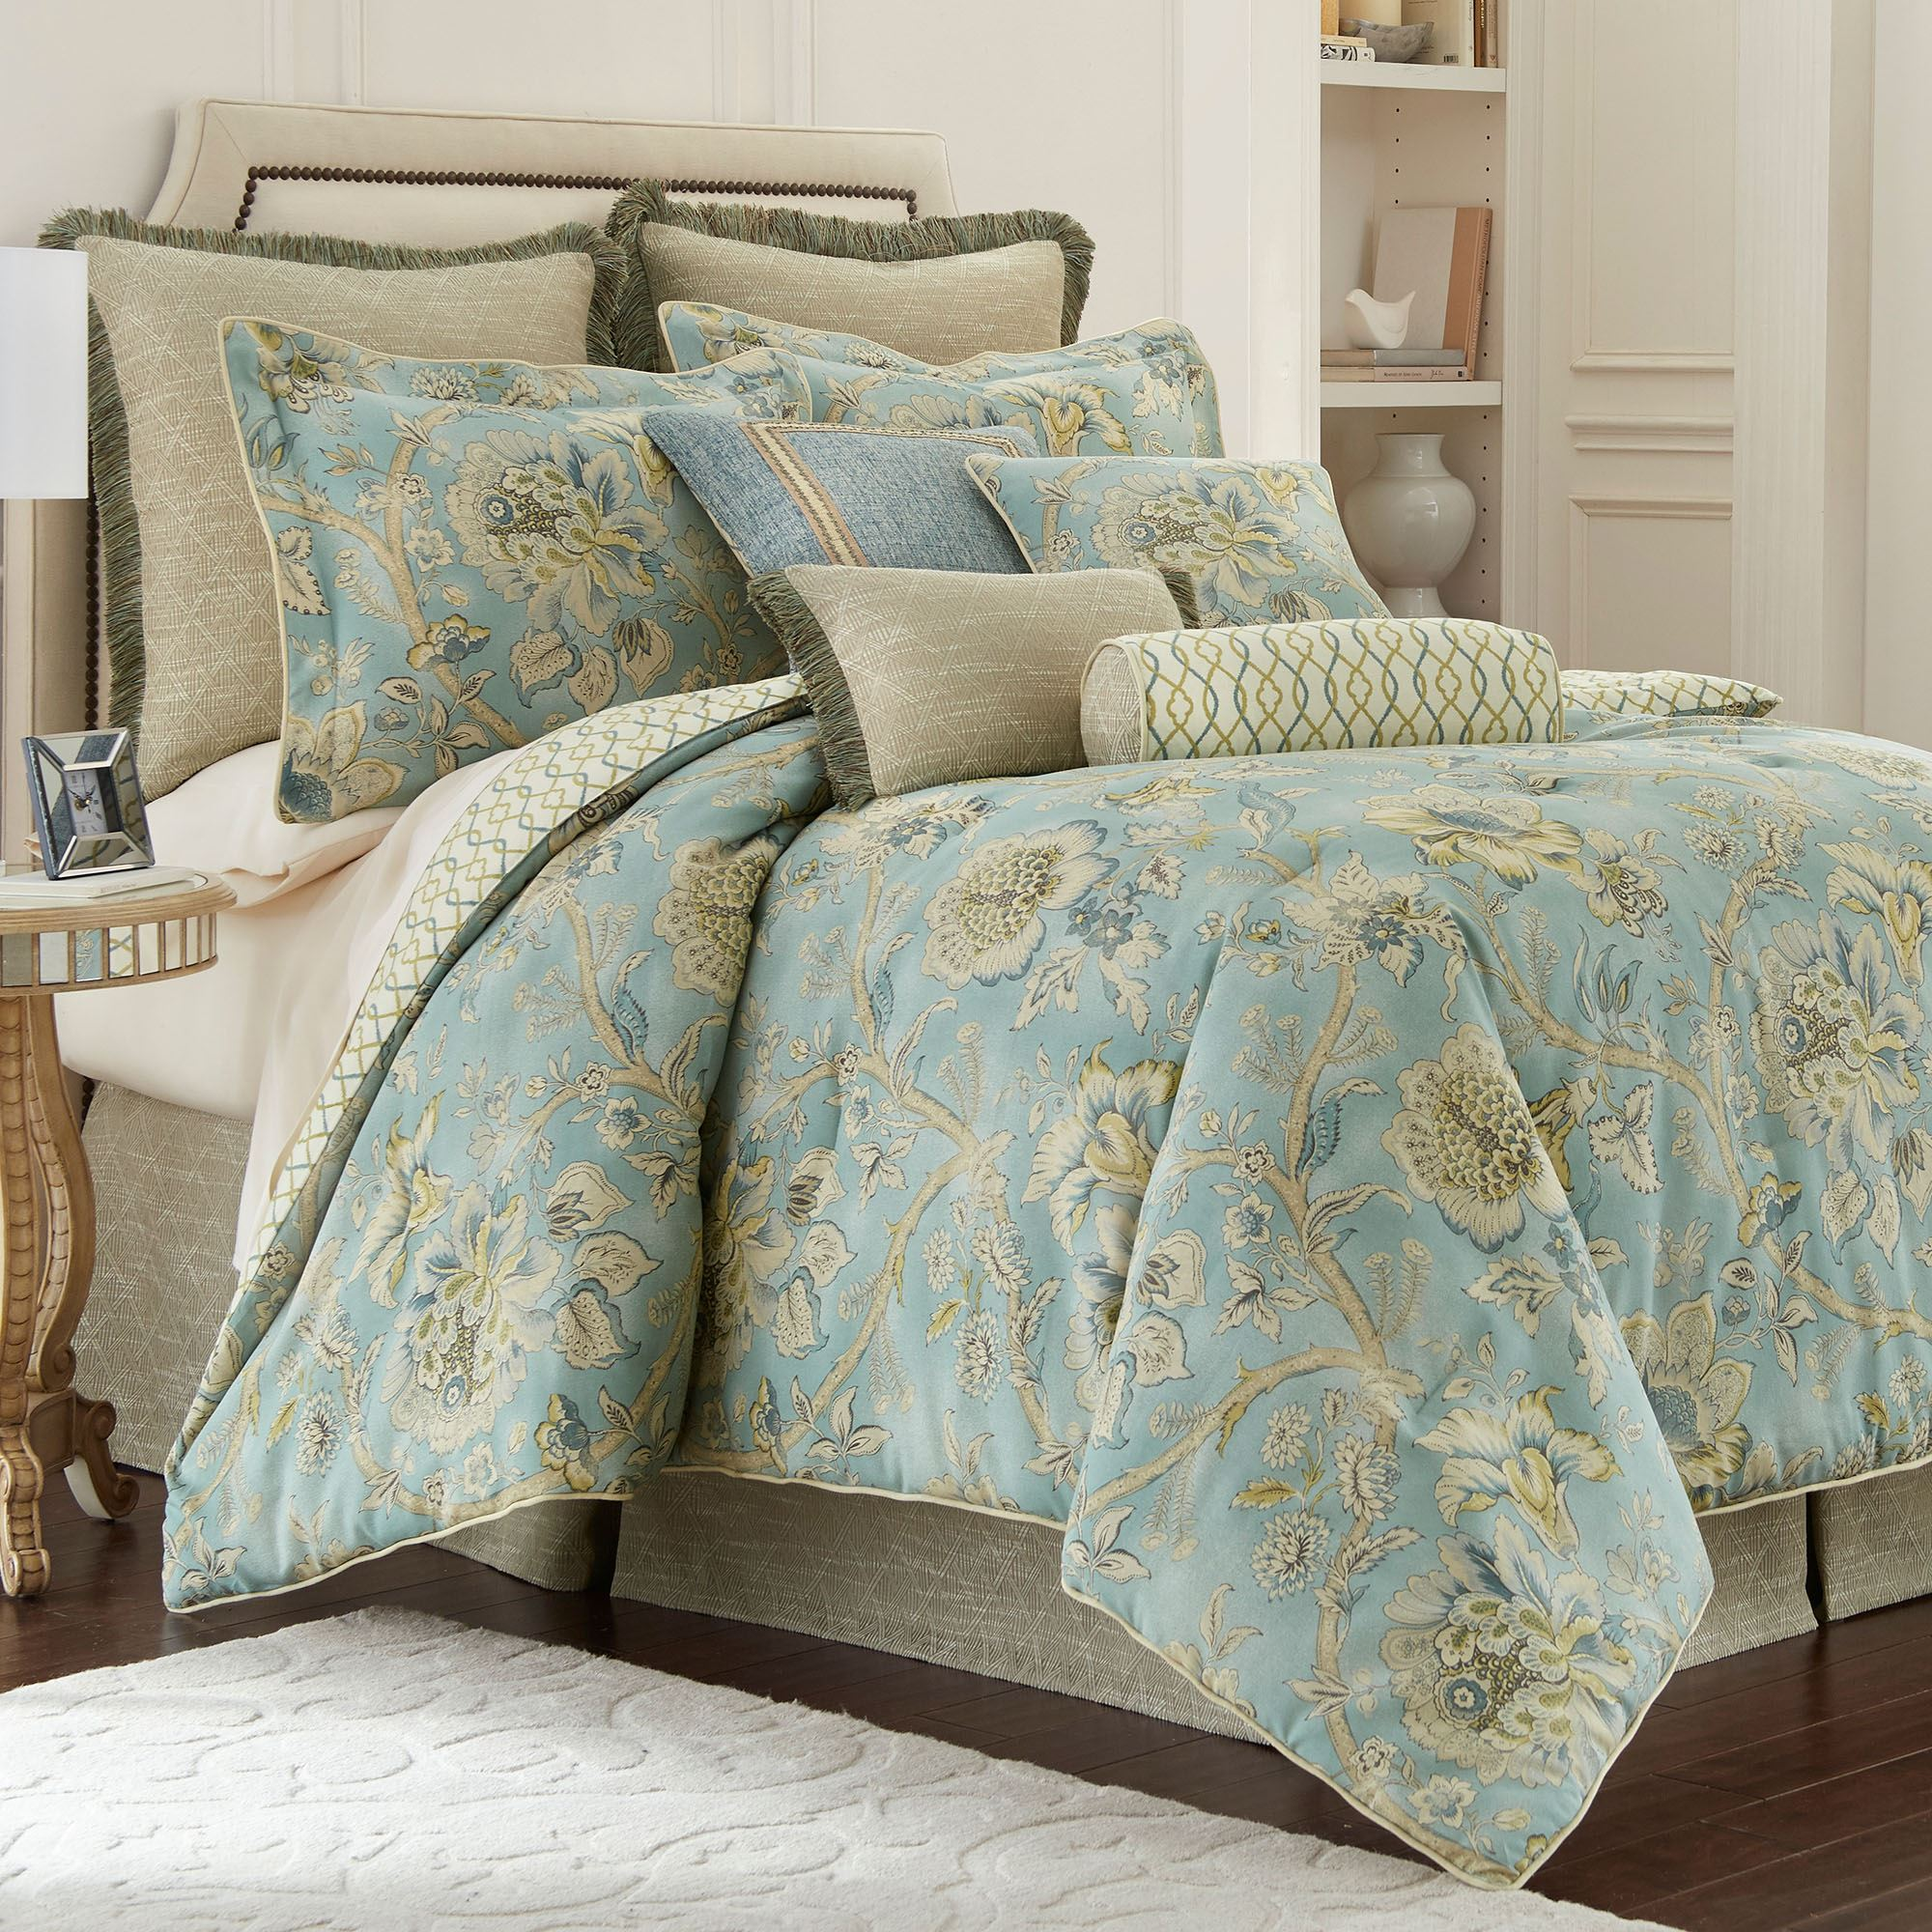 bedding bag c in comforter sets set paisley bed mainstays mainstay a monique teal kp